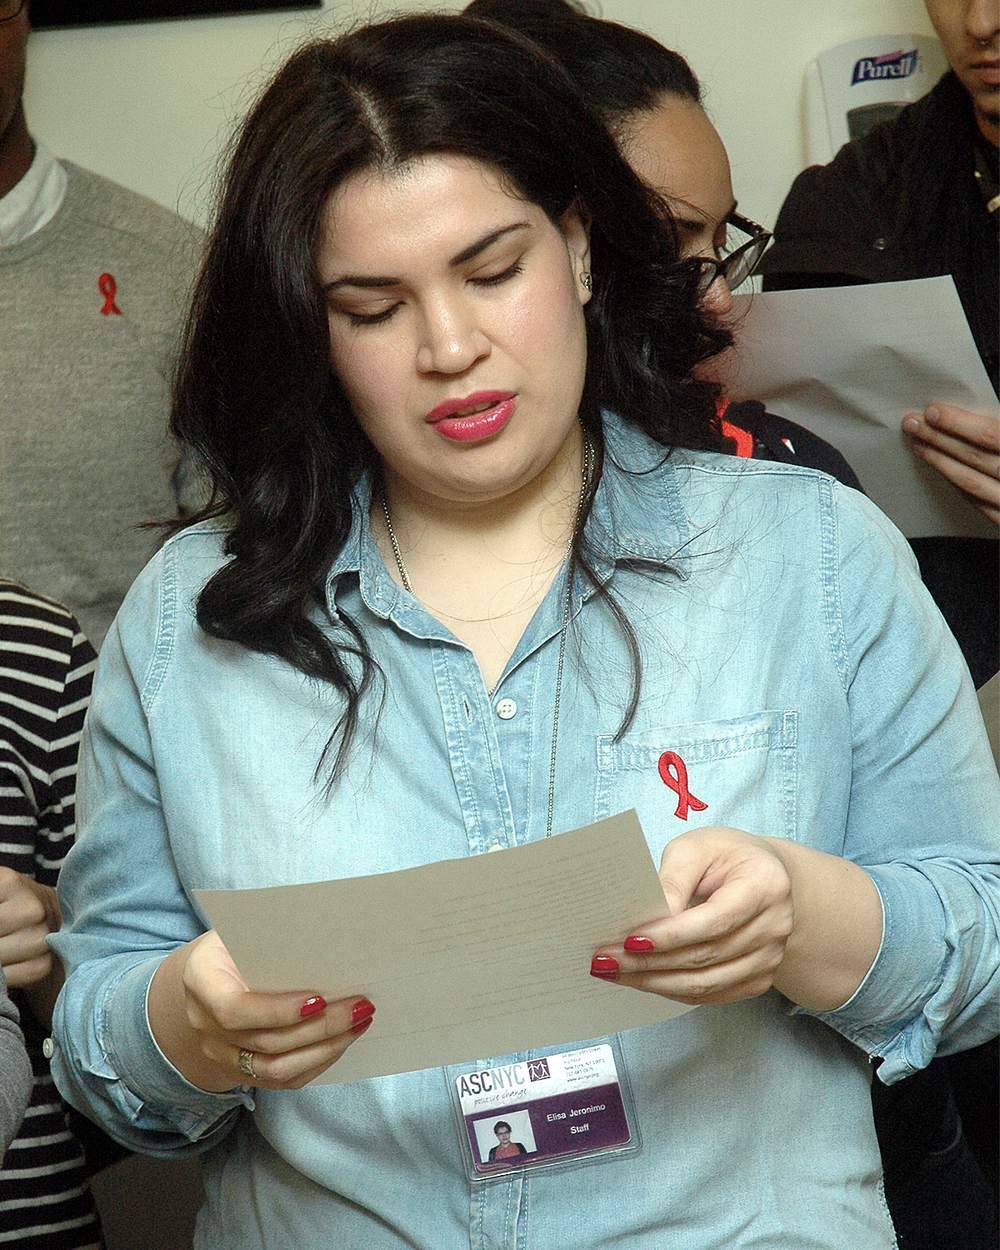 AIDS In Our Community: Reading of Names - Elise Jeronimo